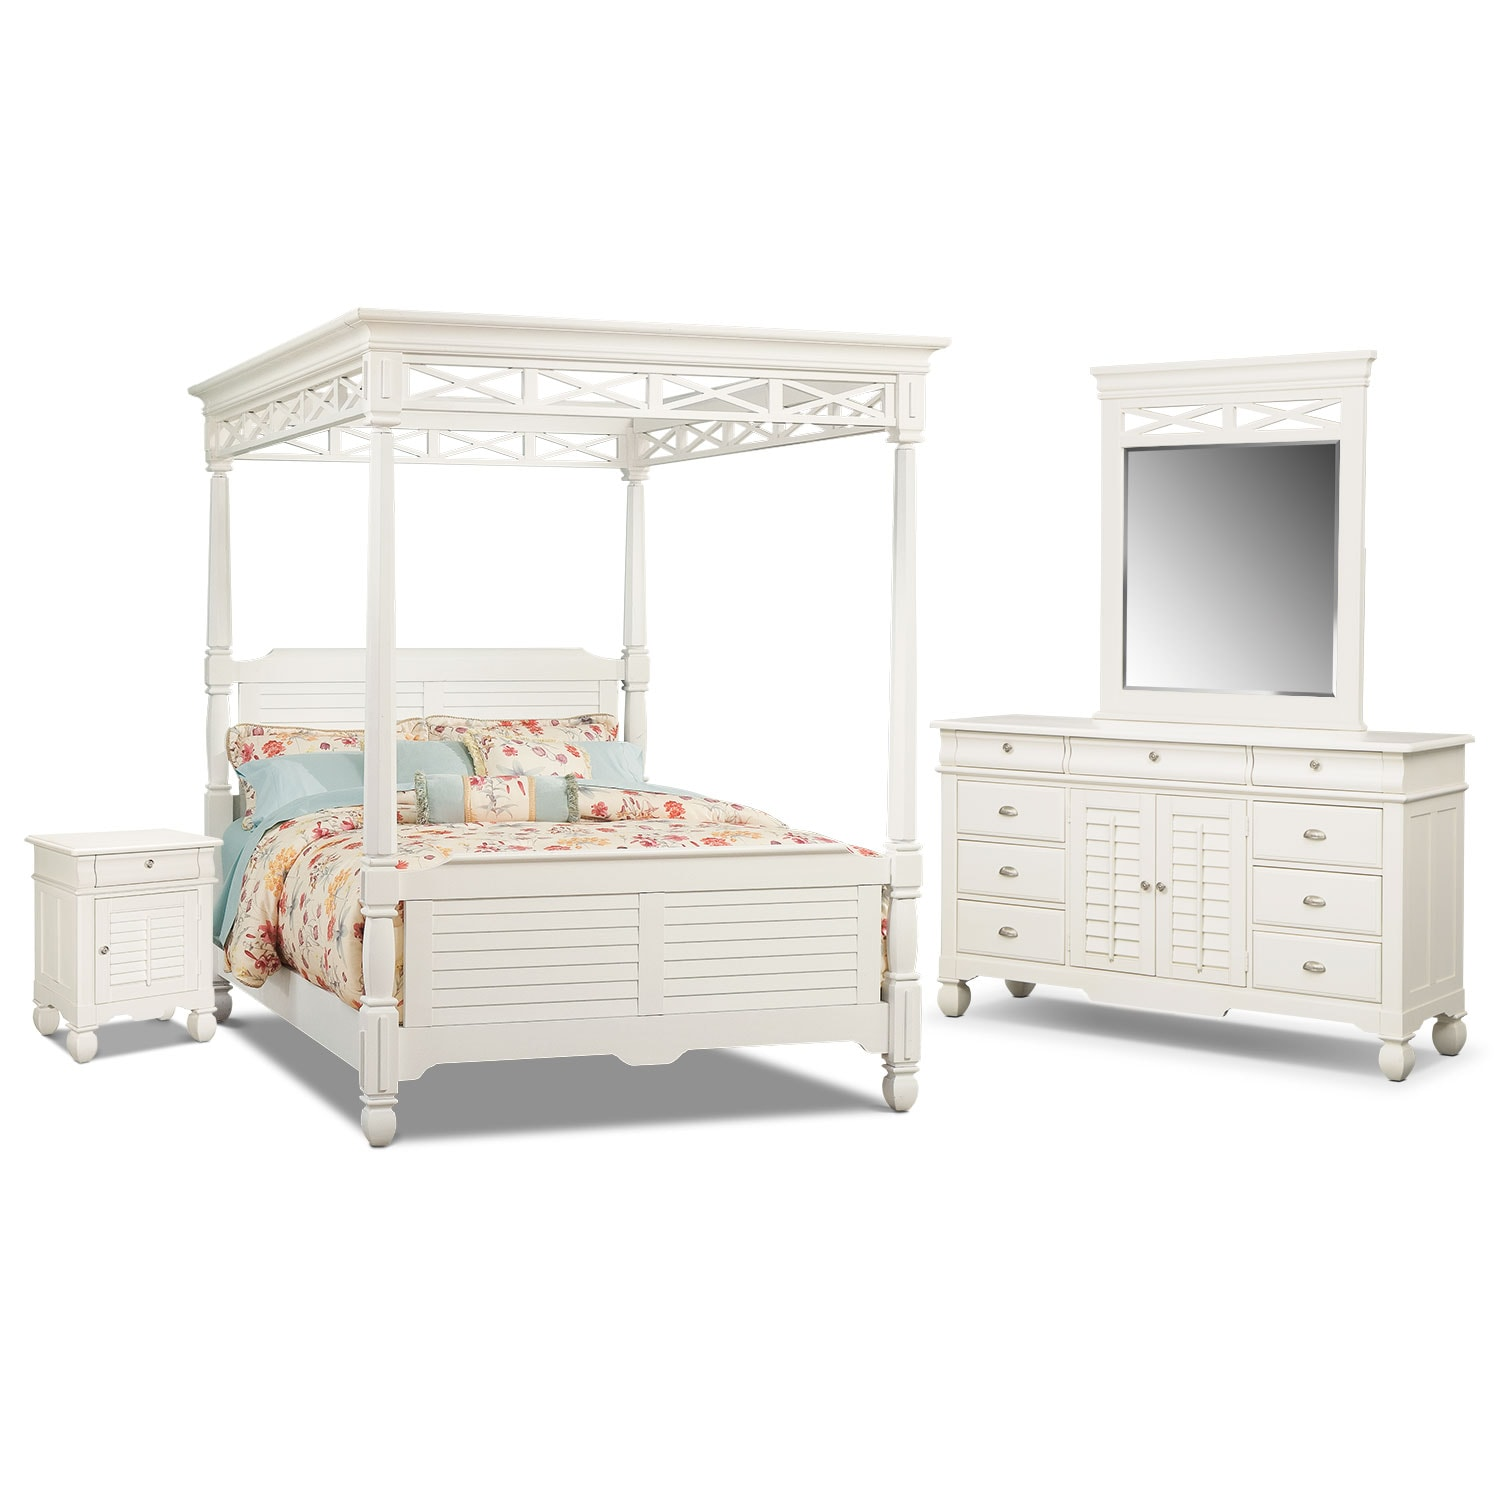 Plantation Cove 6-Piece King Canopy Bedroom Set with Door Nightstand - White